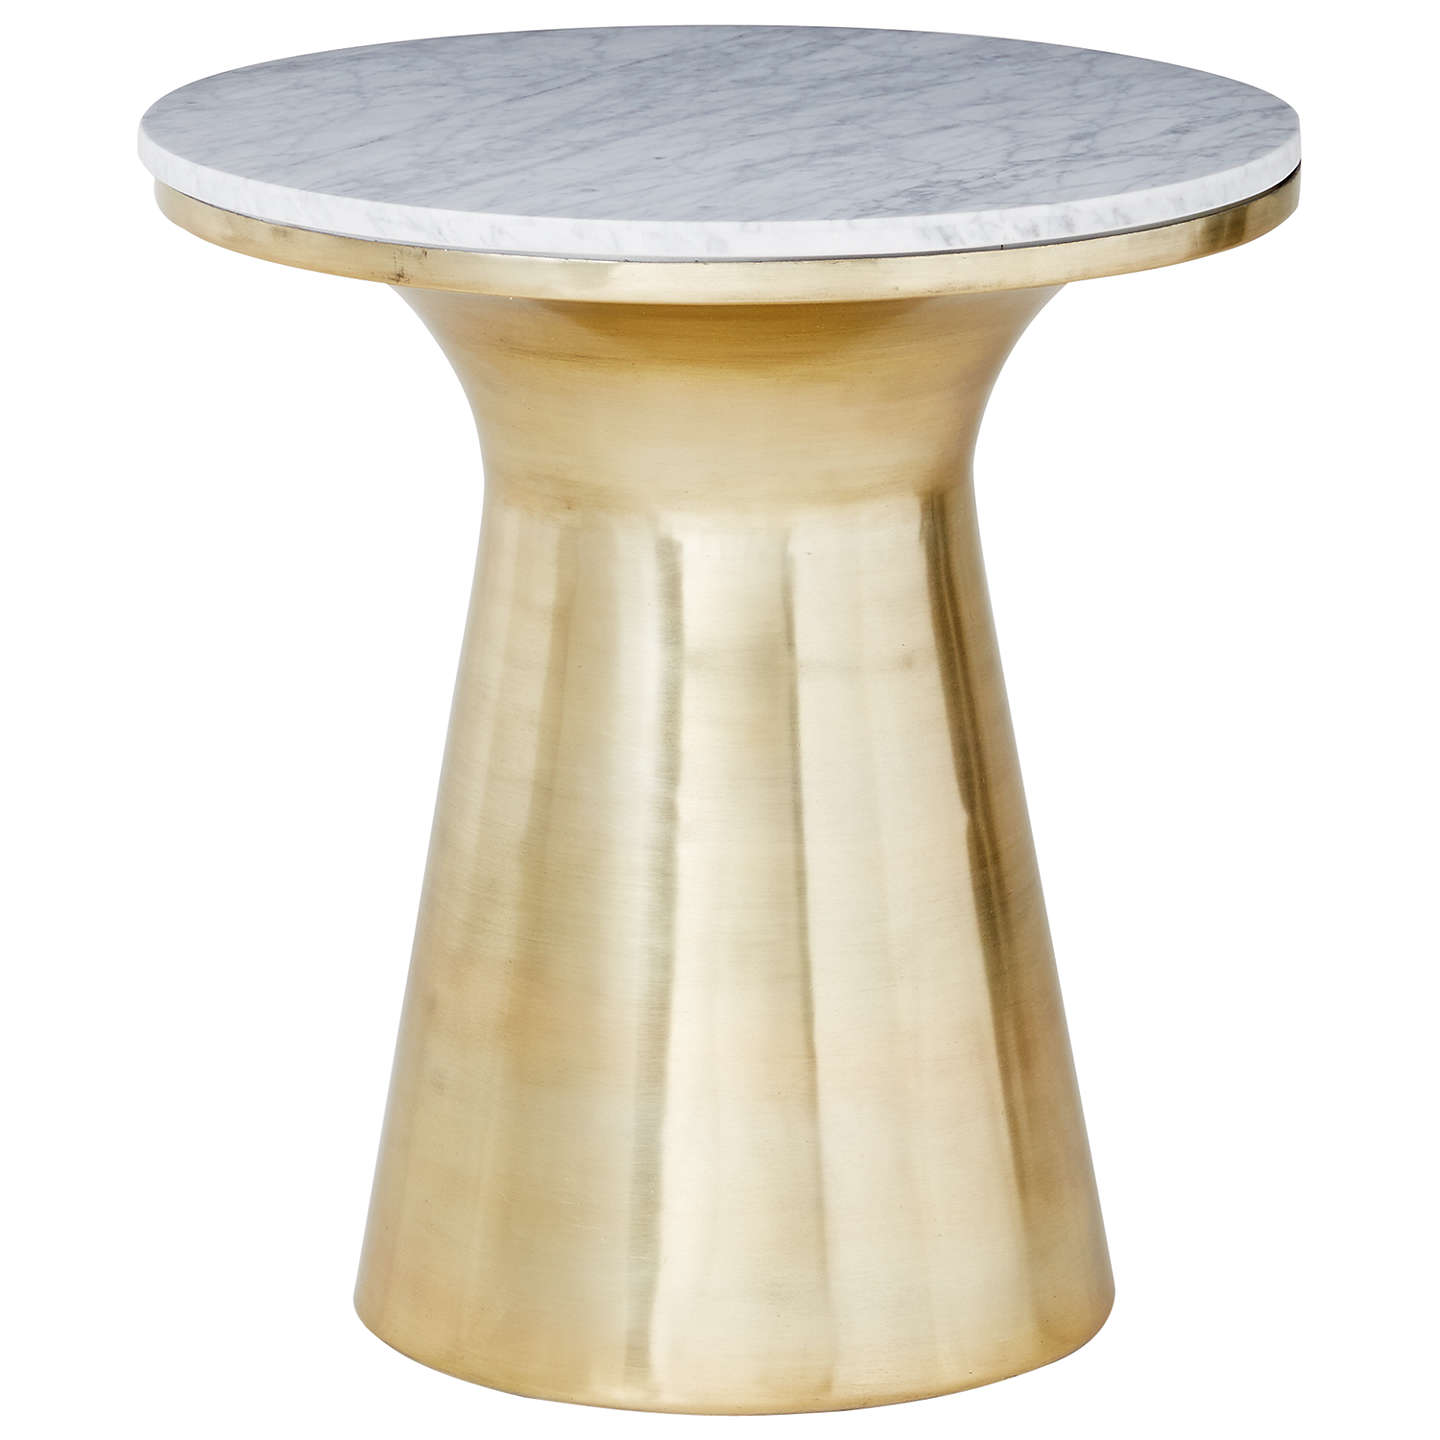 tribecca shipping pedestal antique by overstock q dining extending inspire garden free mckay white home today marble country table product classic